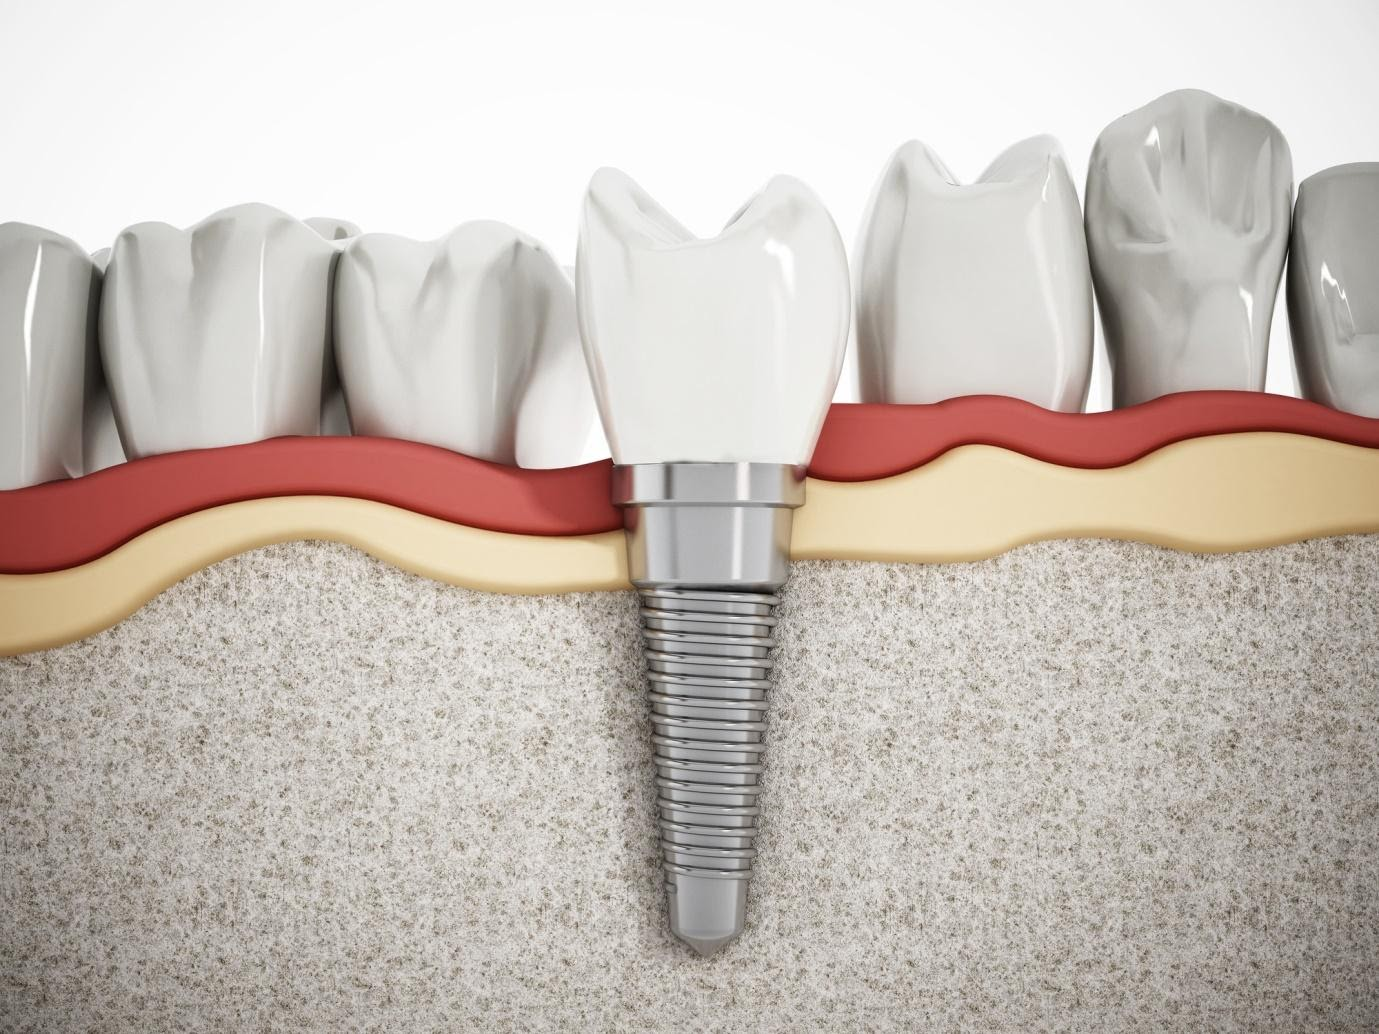 The Different Options for Replacing Missing Teeth